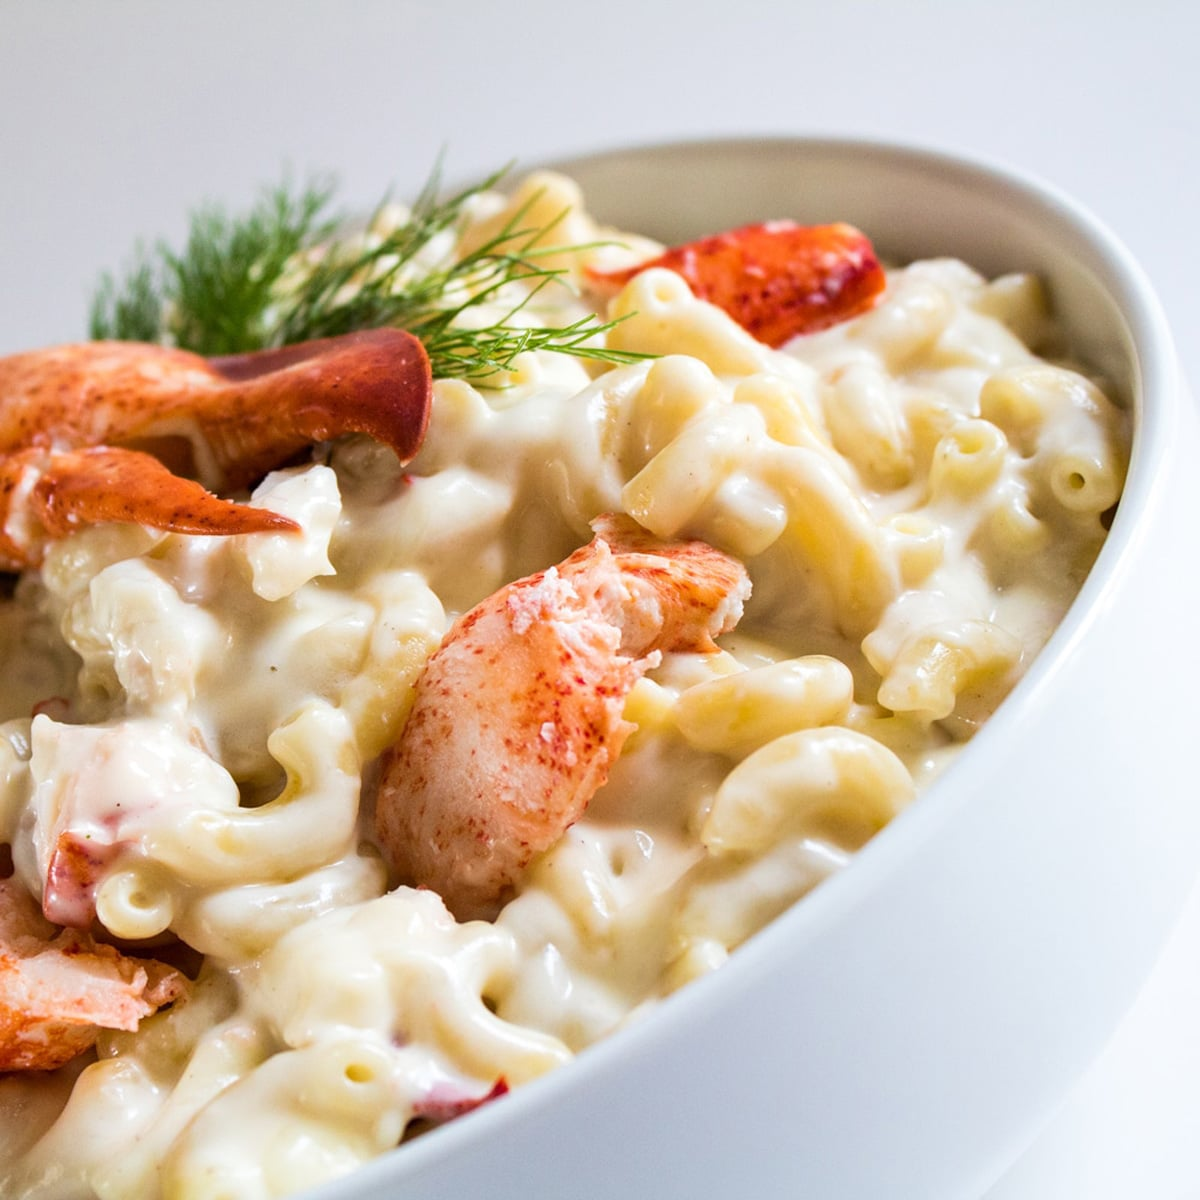 Lobster mac and cheese in a white bowl with chunks of lobster and fresh dill on top.